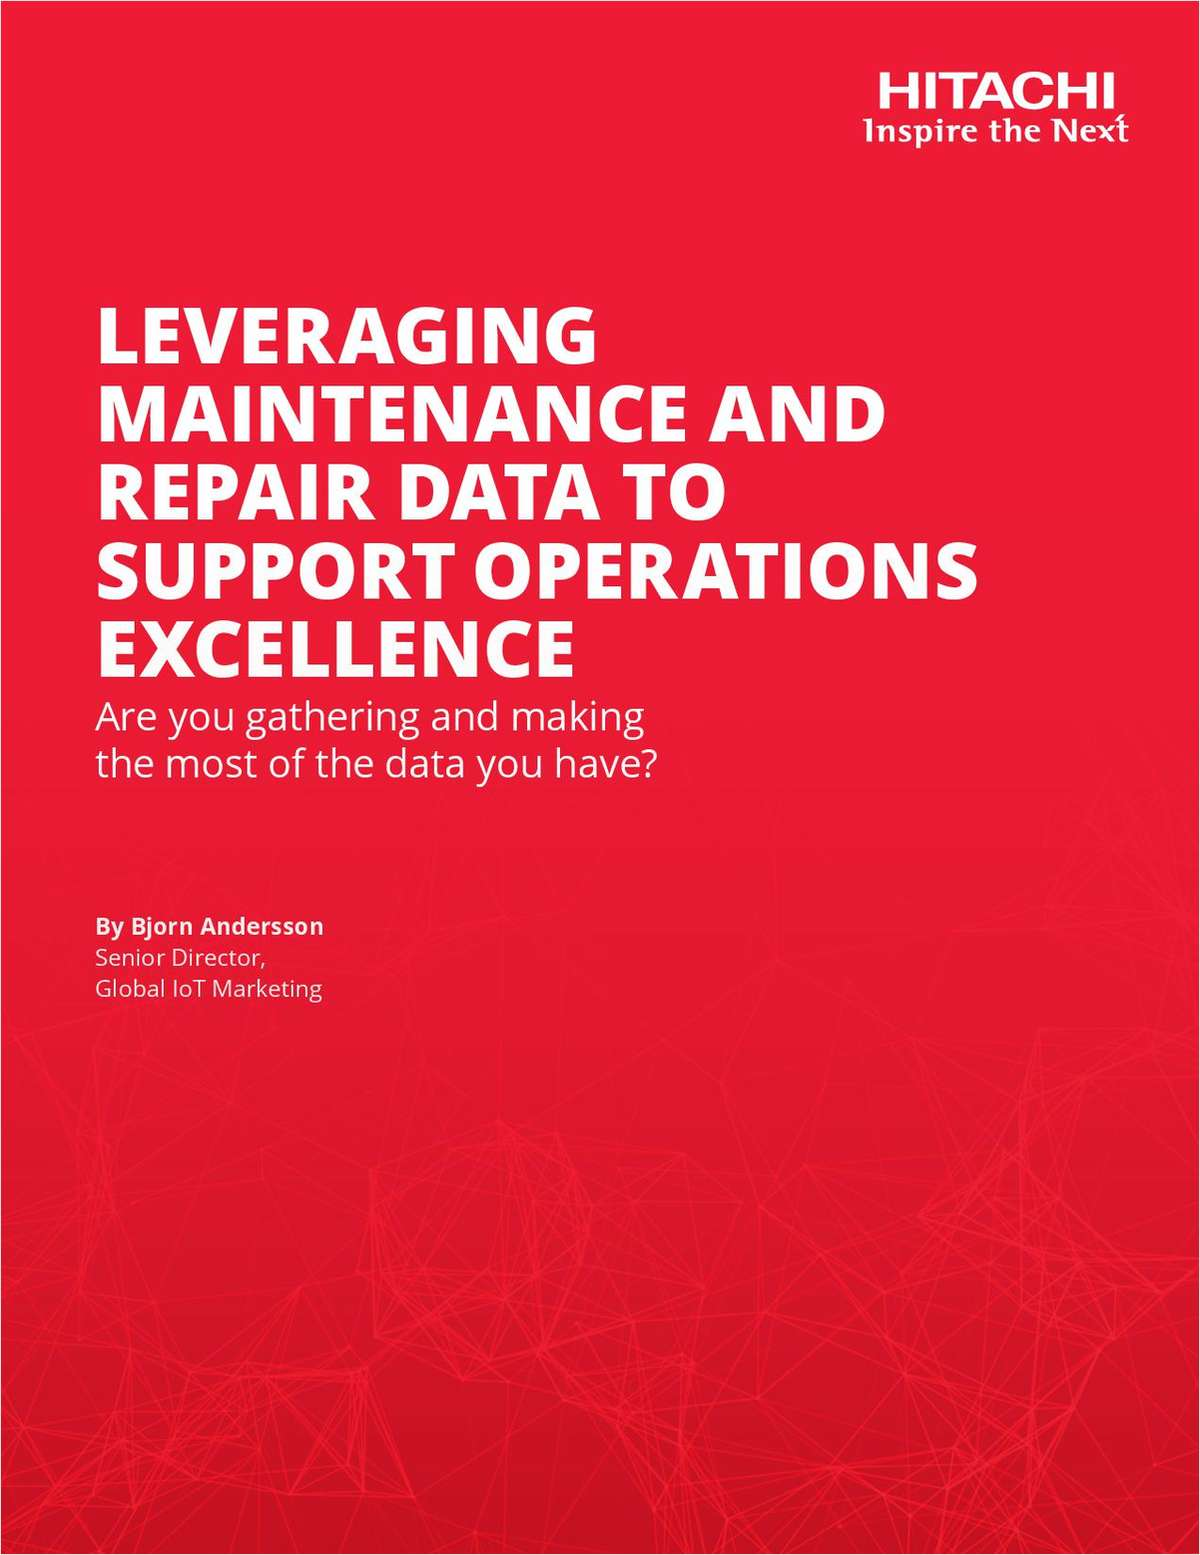 Leverage Maintenance and Repair Data to Achieve Operations Excellence